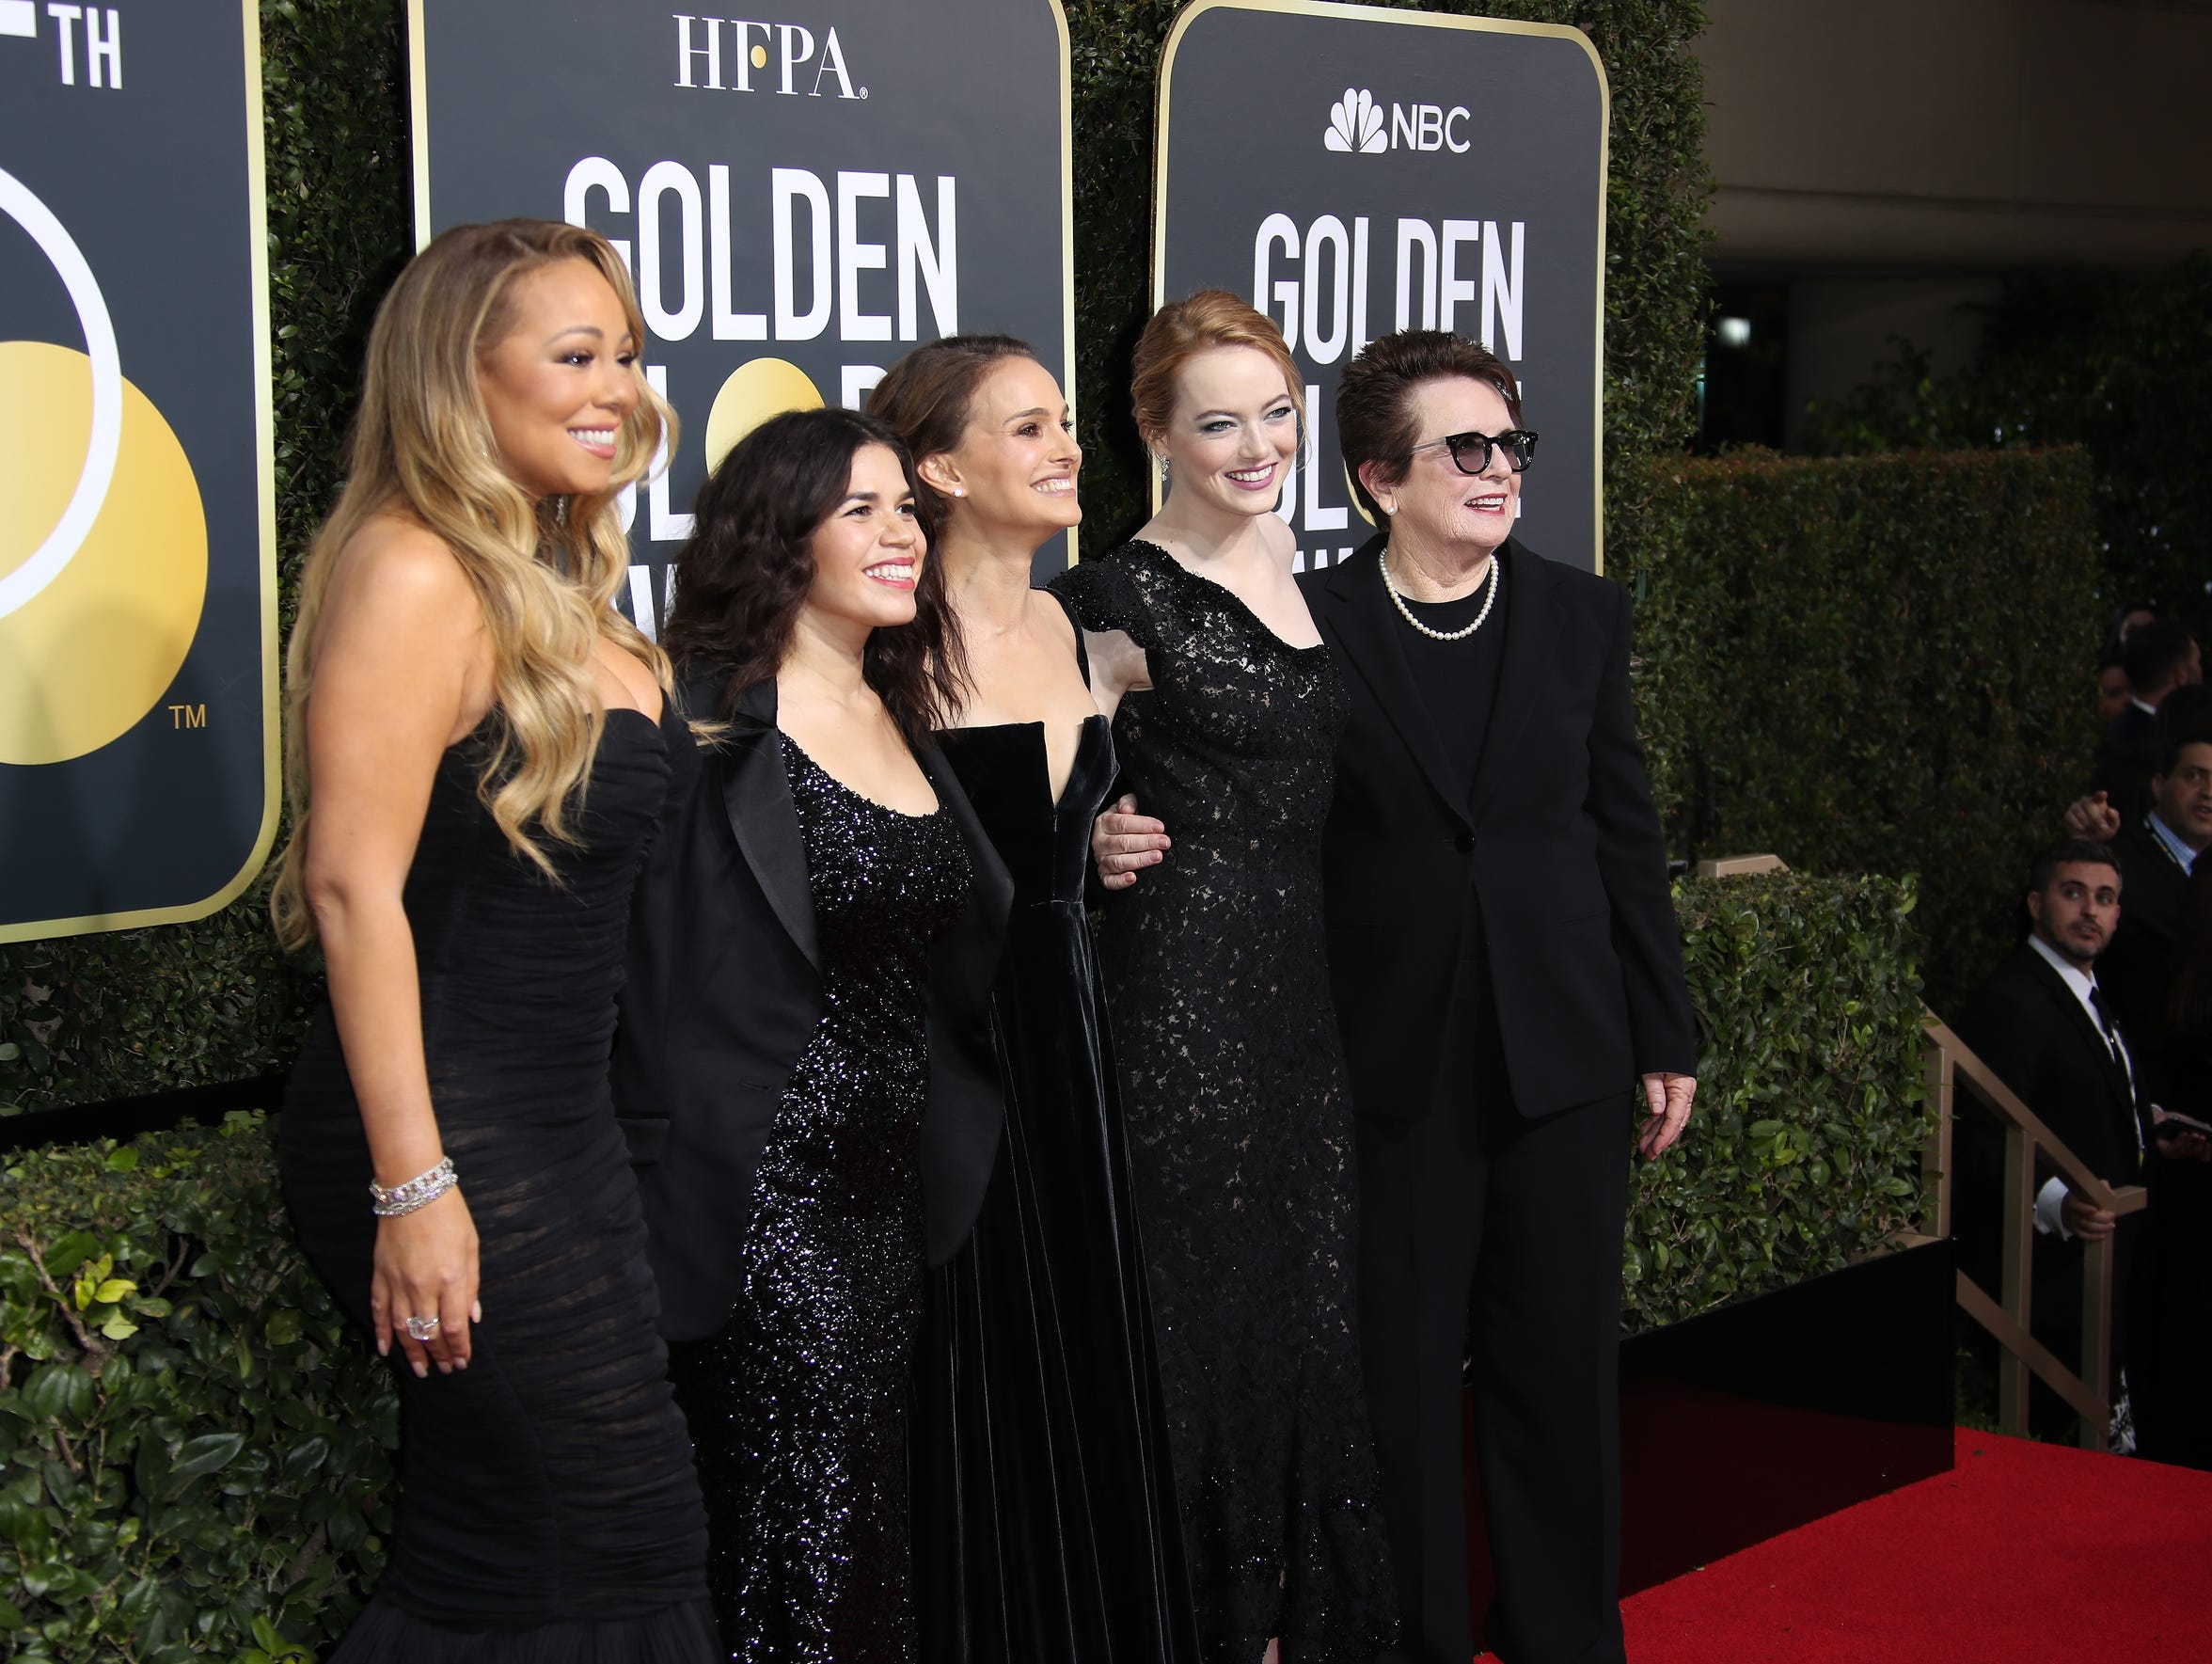 Many of Hollywood's women, including Mariah Carey, America Ferrera, Natalie Portman, Emma Stone and Billie Jean King, wore black to the 75th Golden Globe Awards as a show of solidarity with the Time's Up movement.